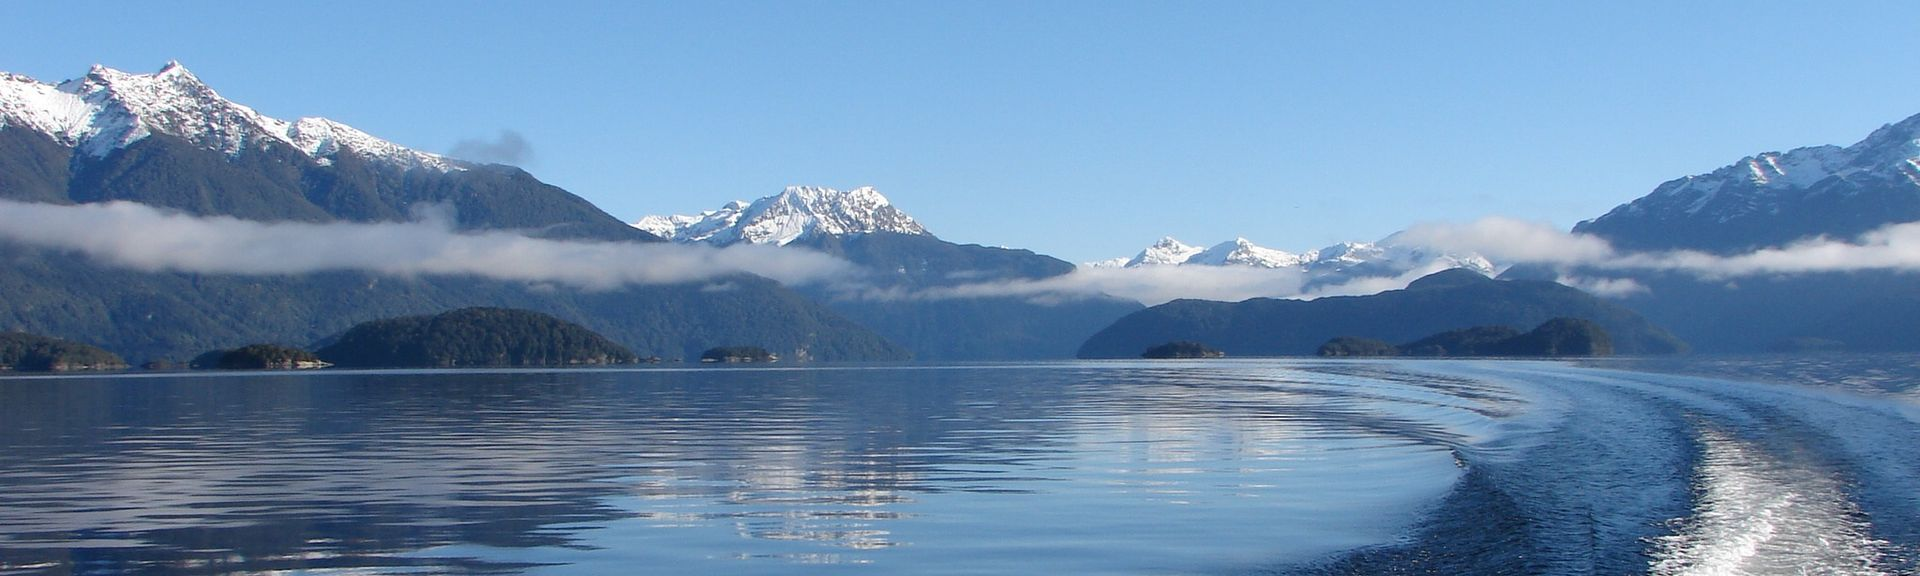 Manapouri, Southland, New Zealand